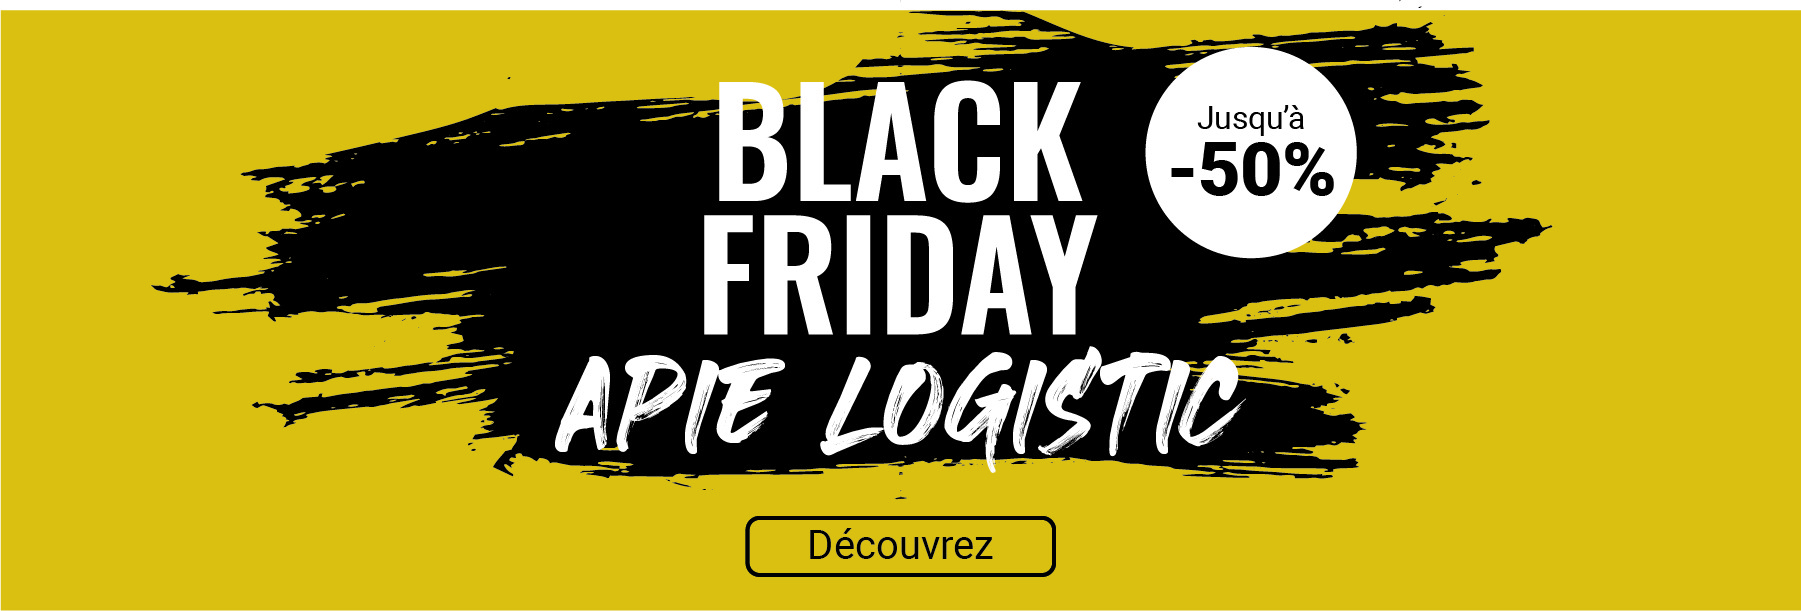 BLack Friday Bourg-en-bresse outillage et manutention